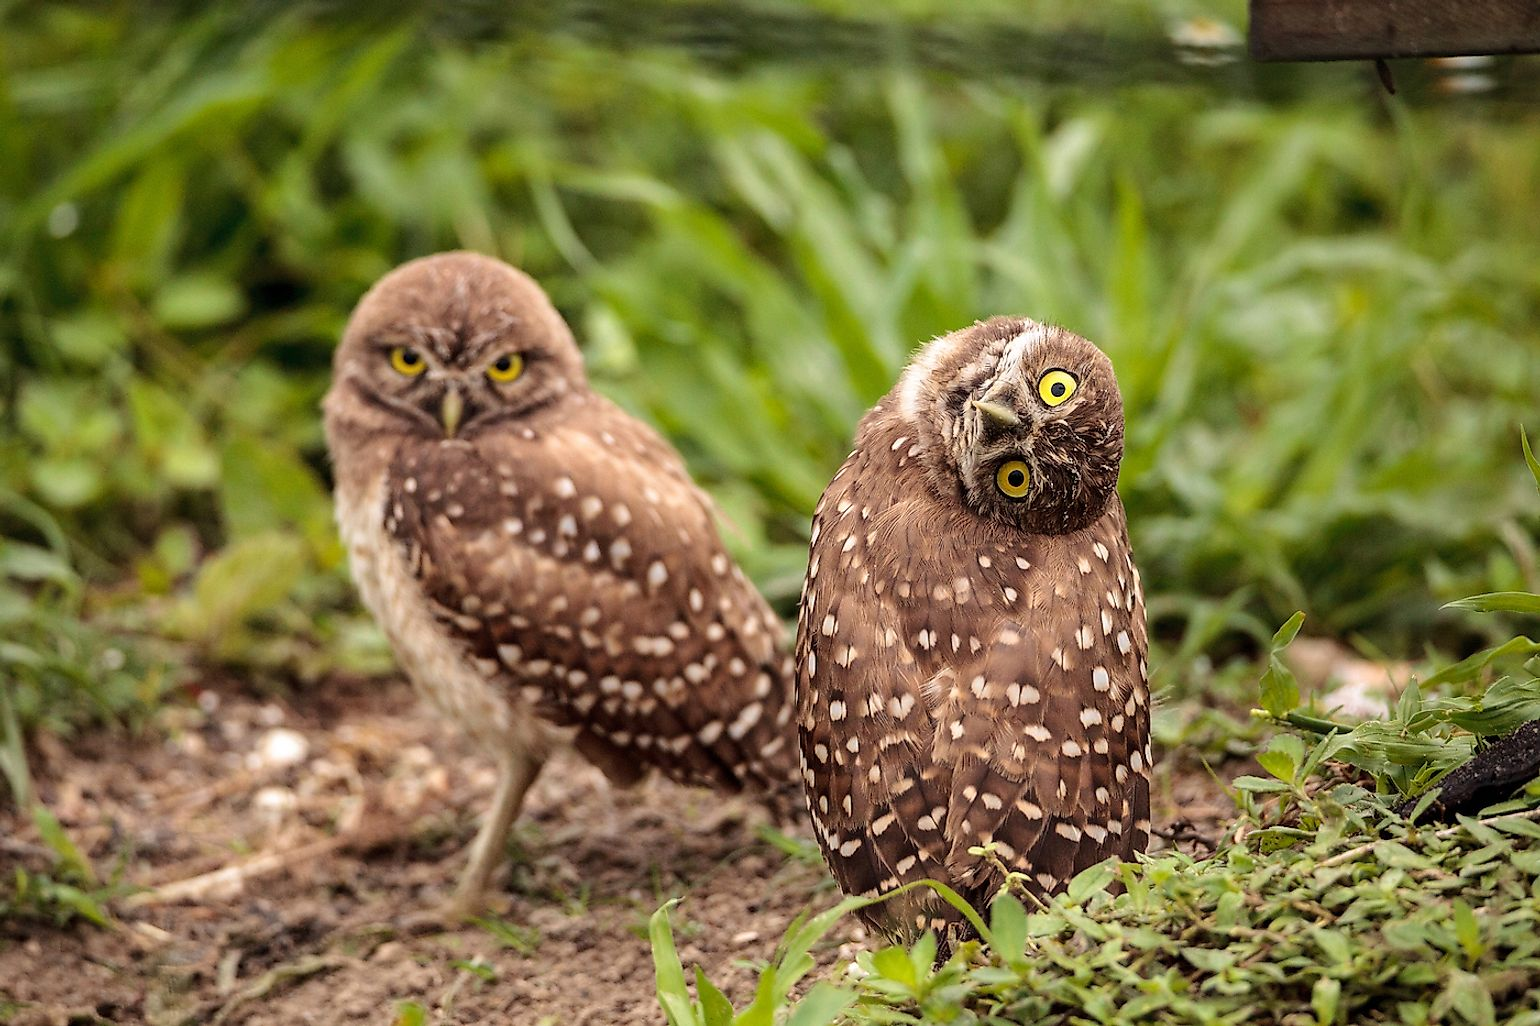 Burrowing owl tilts its head outside its burrow on Marco Island, Florida. Image credit: SunflowerMomma/Shutterstock.com